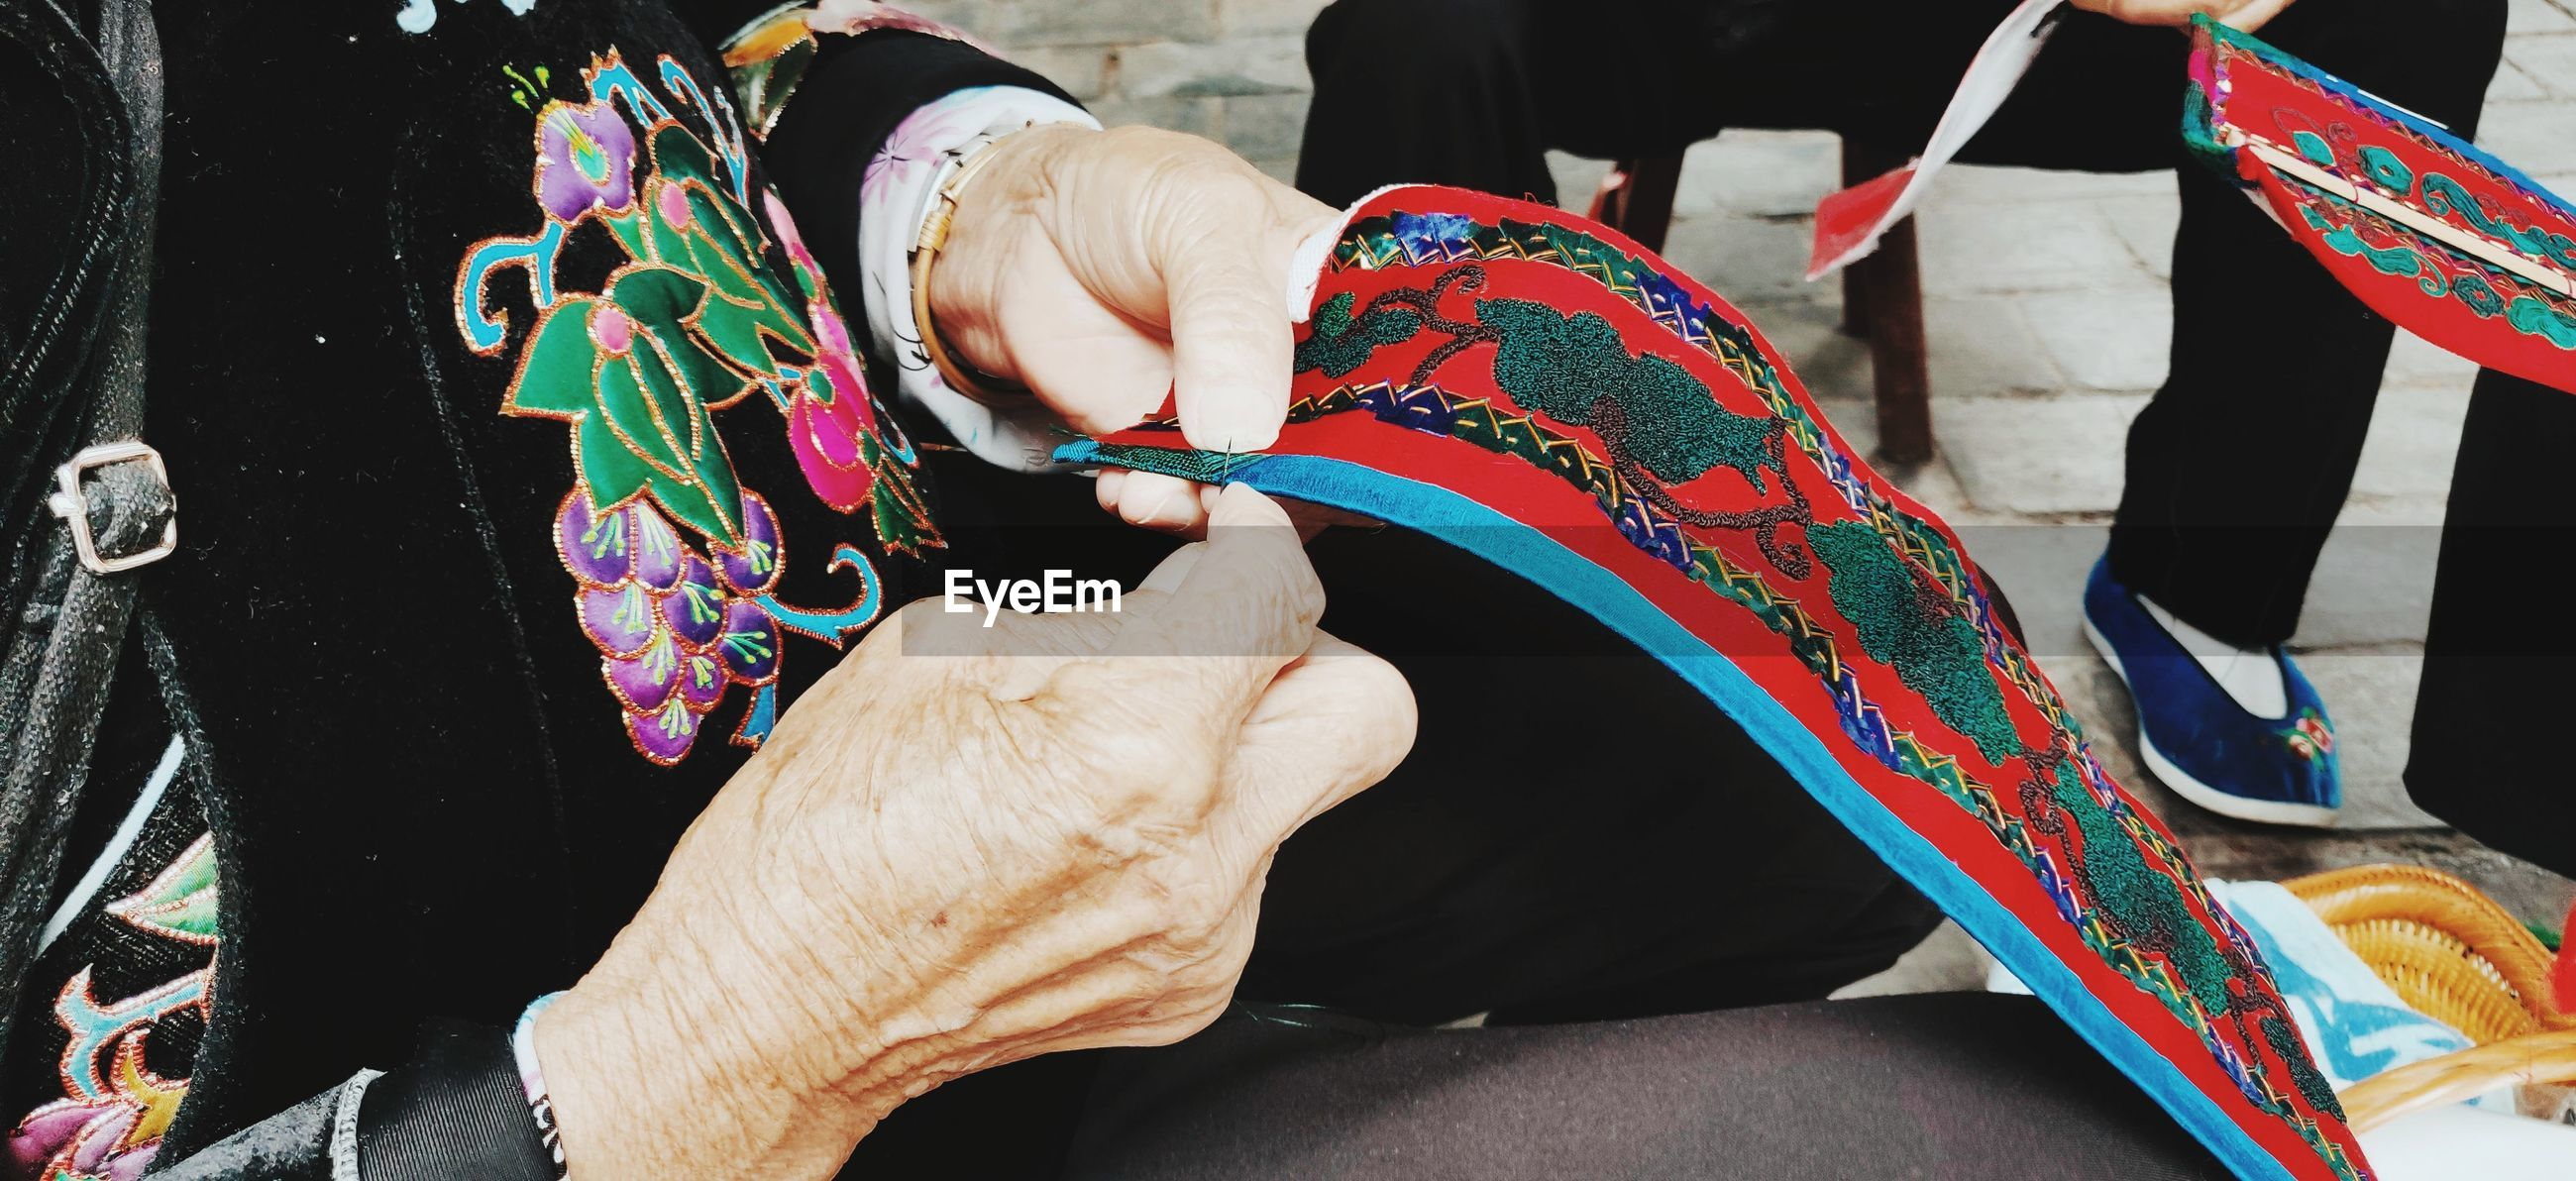 Midsection of man and holding sewing colorful textile